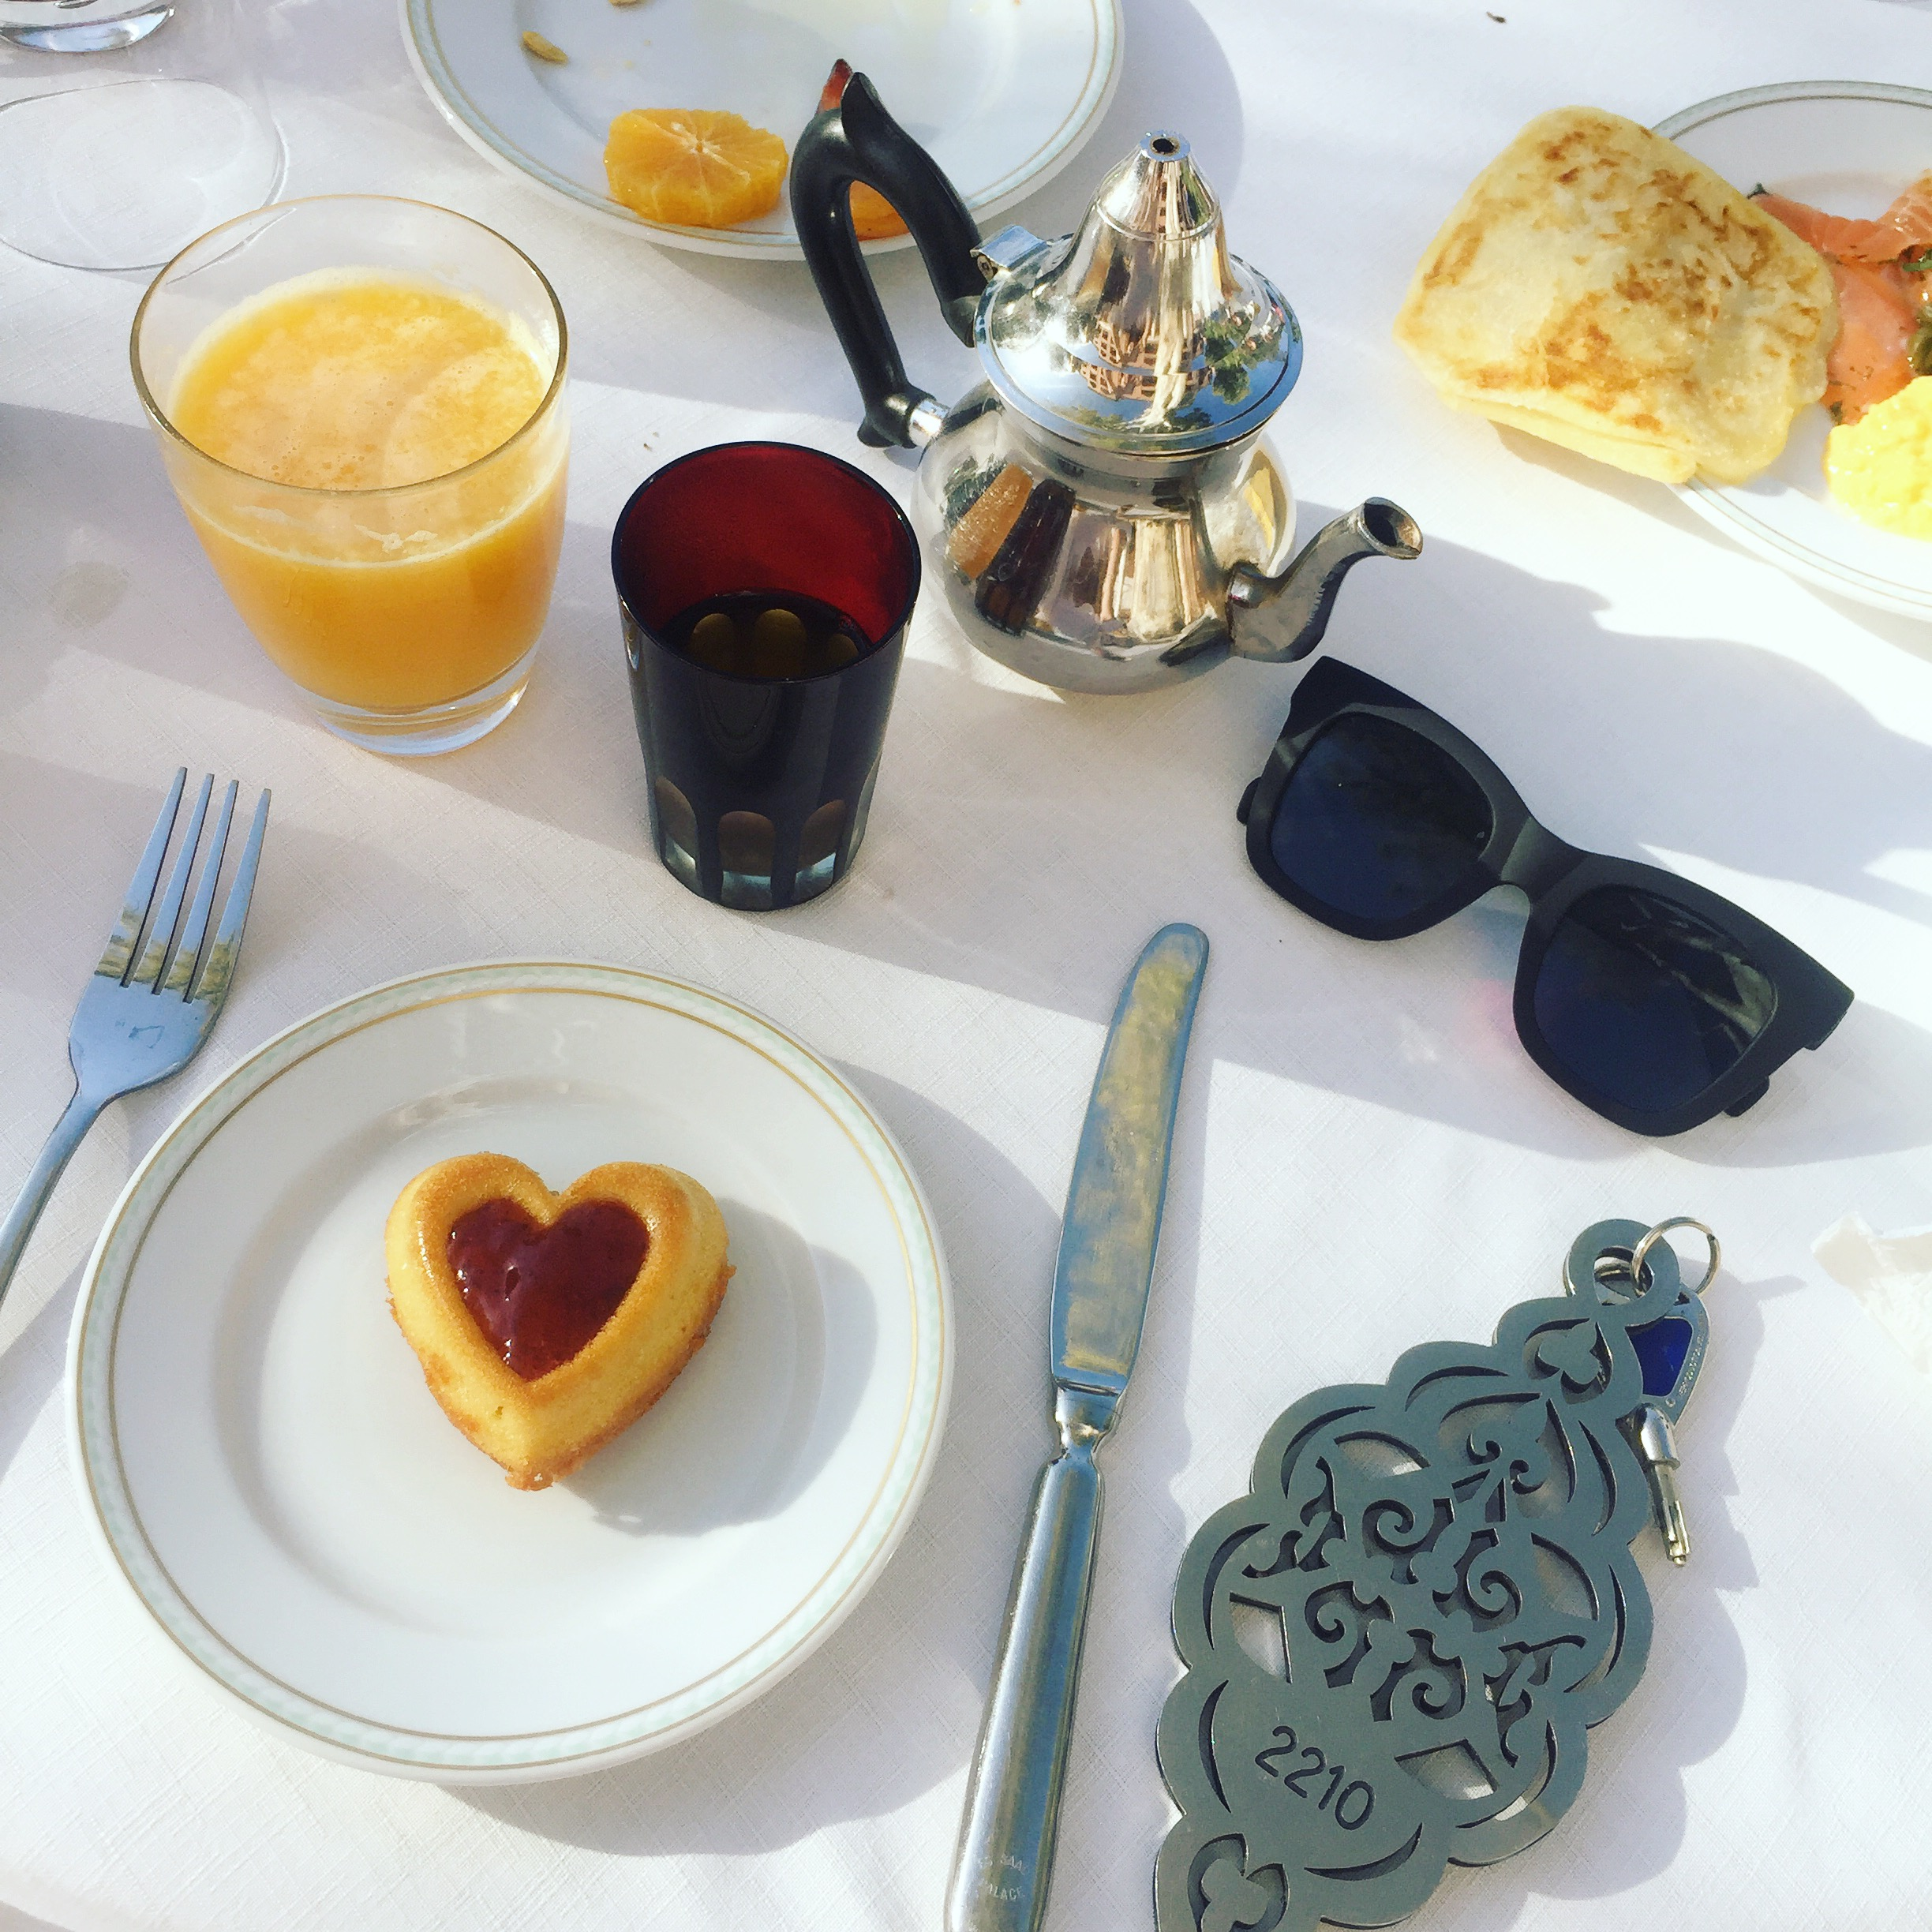 Booze-free zone: Mint tea, OJ and cake replaced my breakfast buck's fizz on this holiday